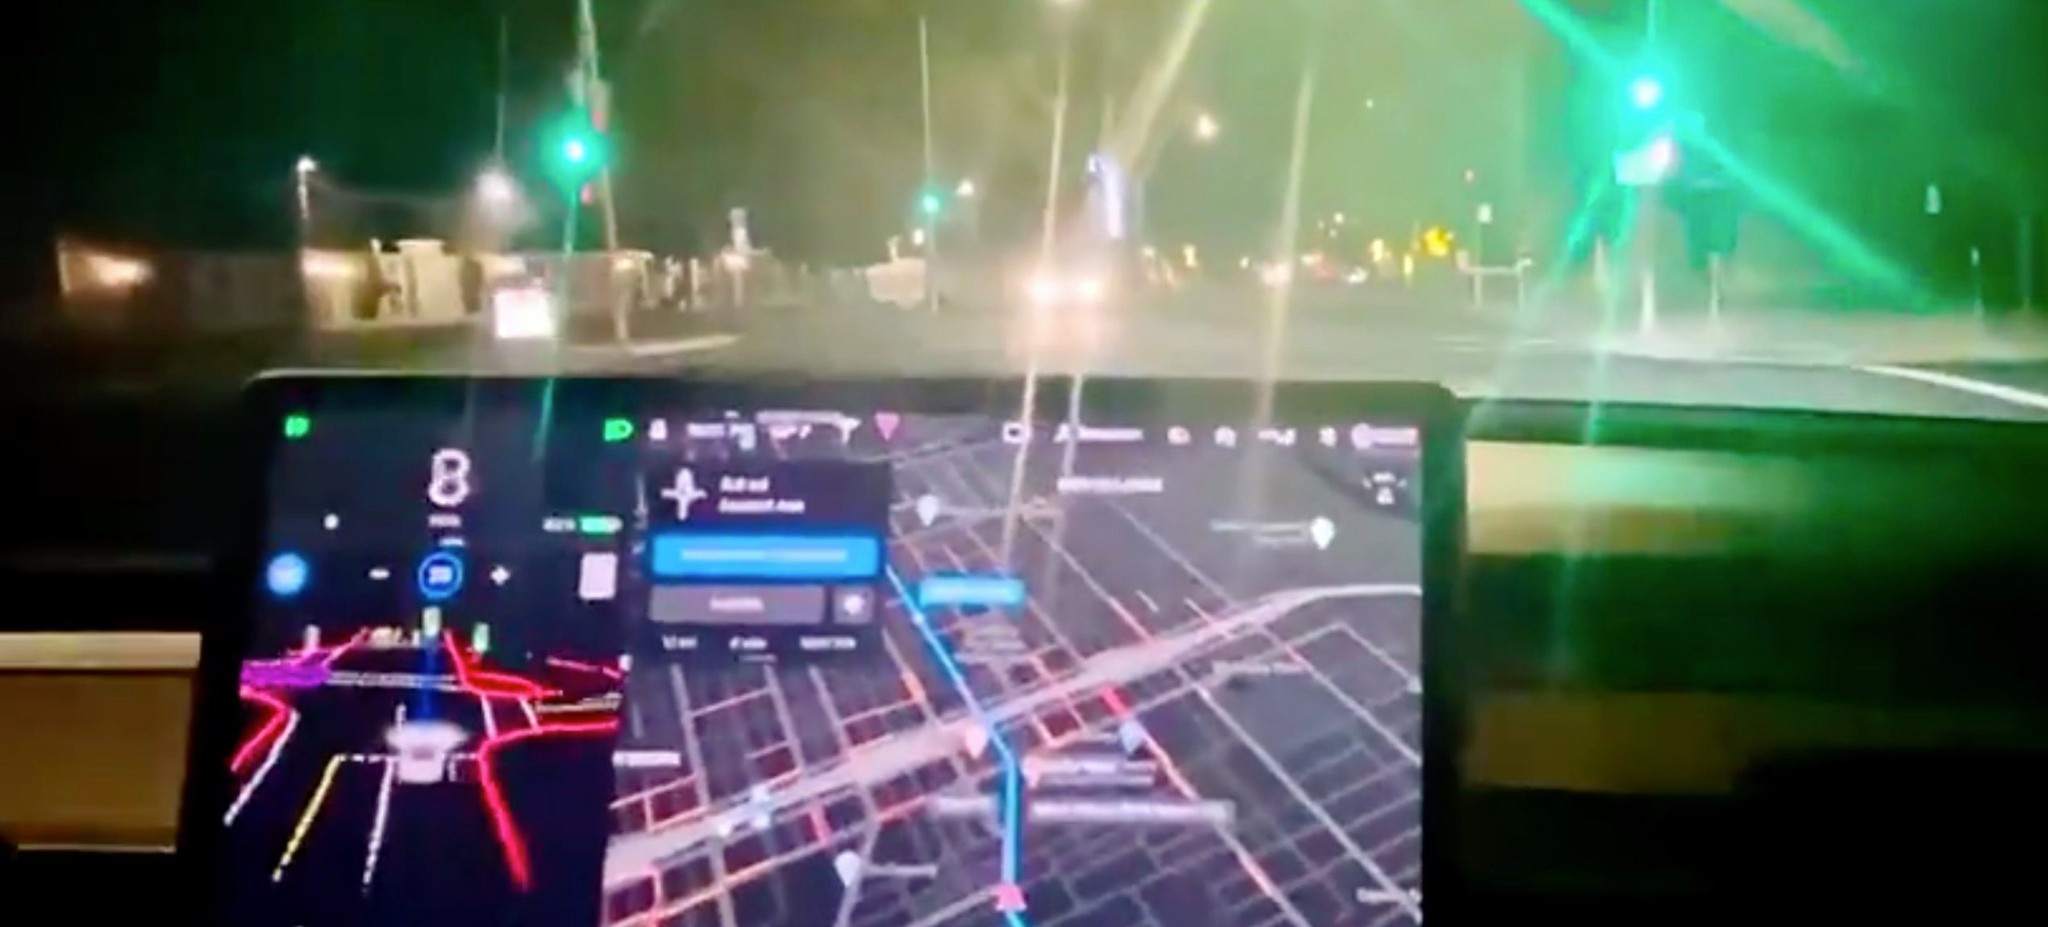 First Look at Tesla Full Self-Driving Beta and it looks just insane - Electrek